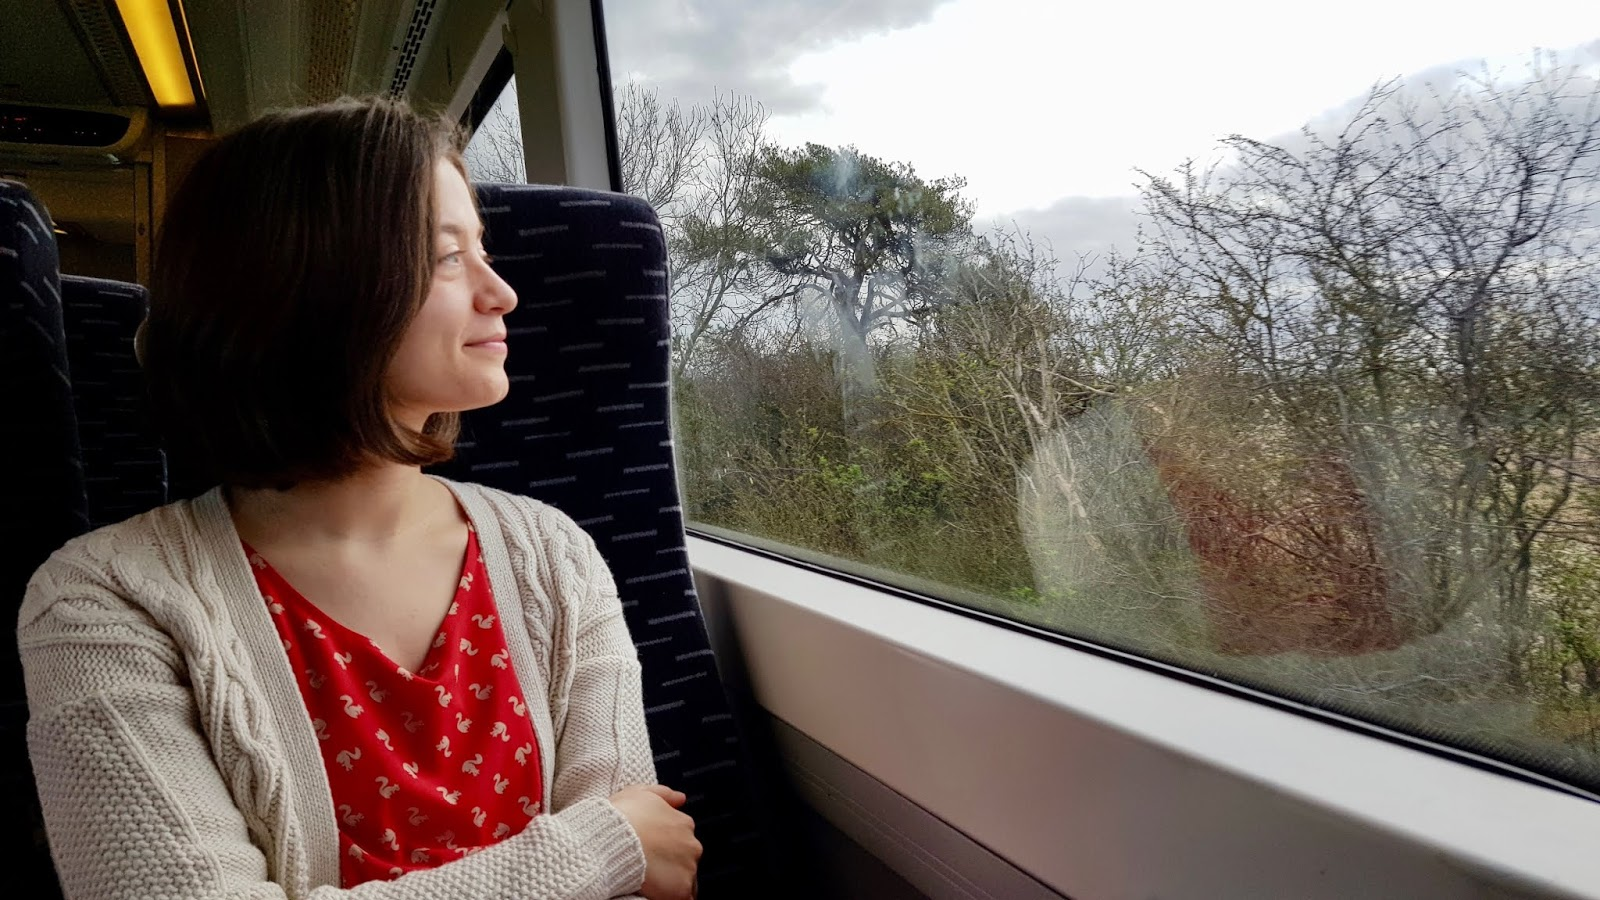 Abbey sitting on a Greater Anglia train, looking out of the window at the Suffolk countryside